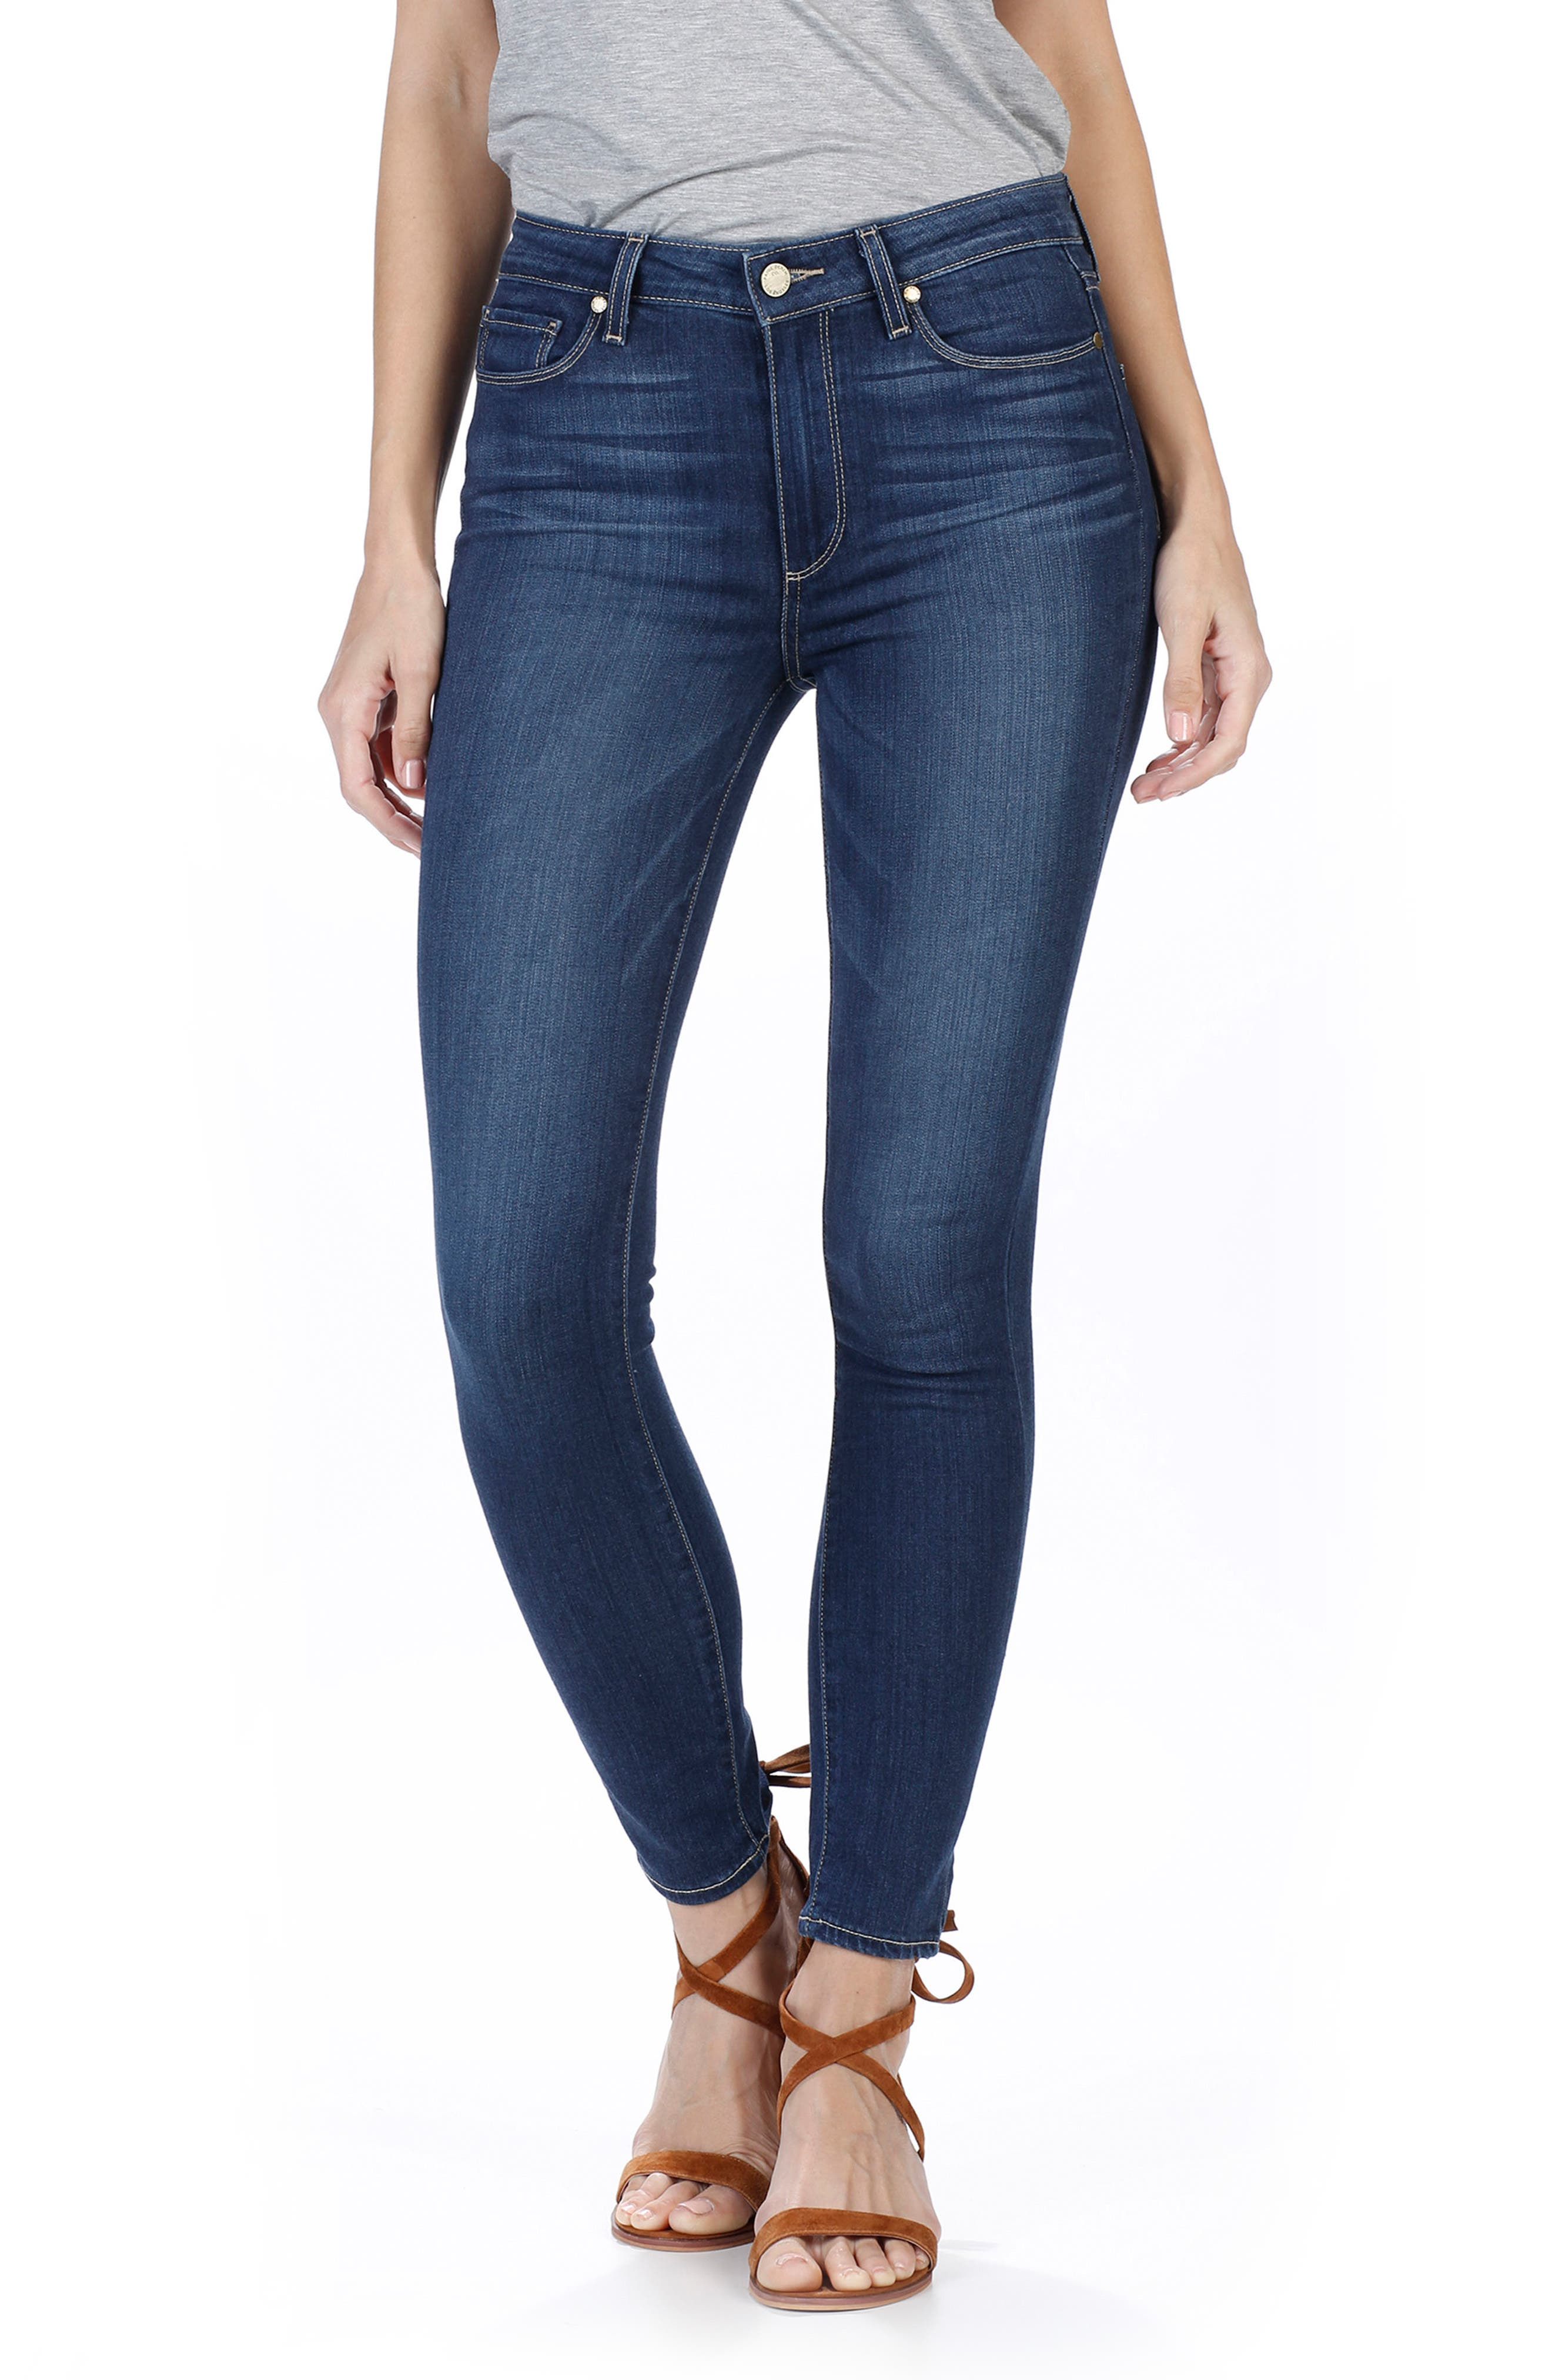 Alternate Image 1 Selected - PAIGE Transcend - Hoxton High Waist Ankle Skinny Jeans (Trina)